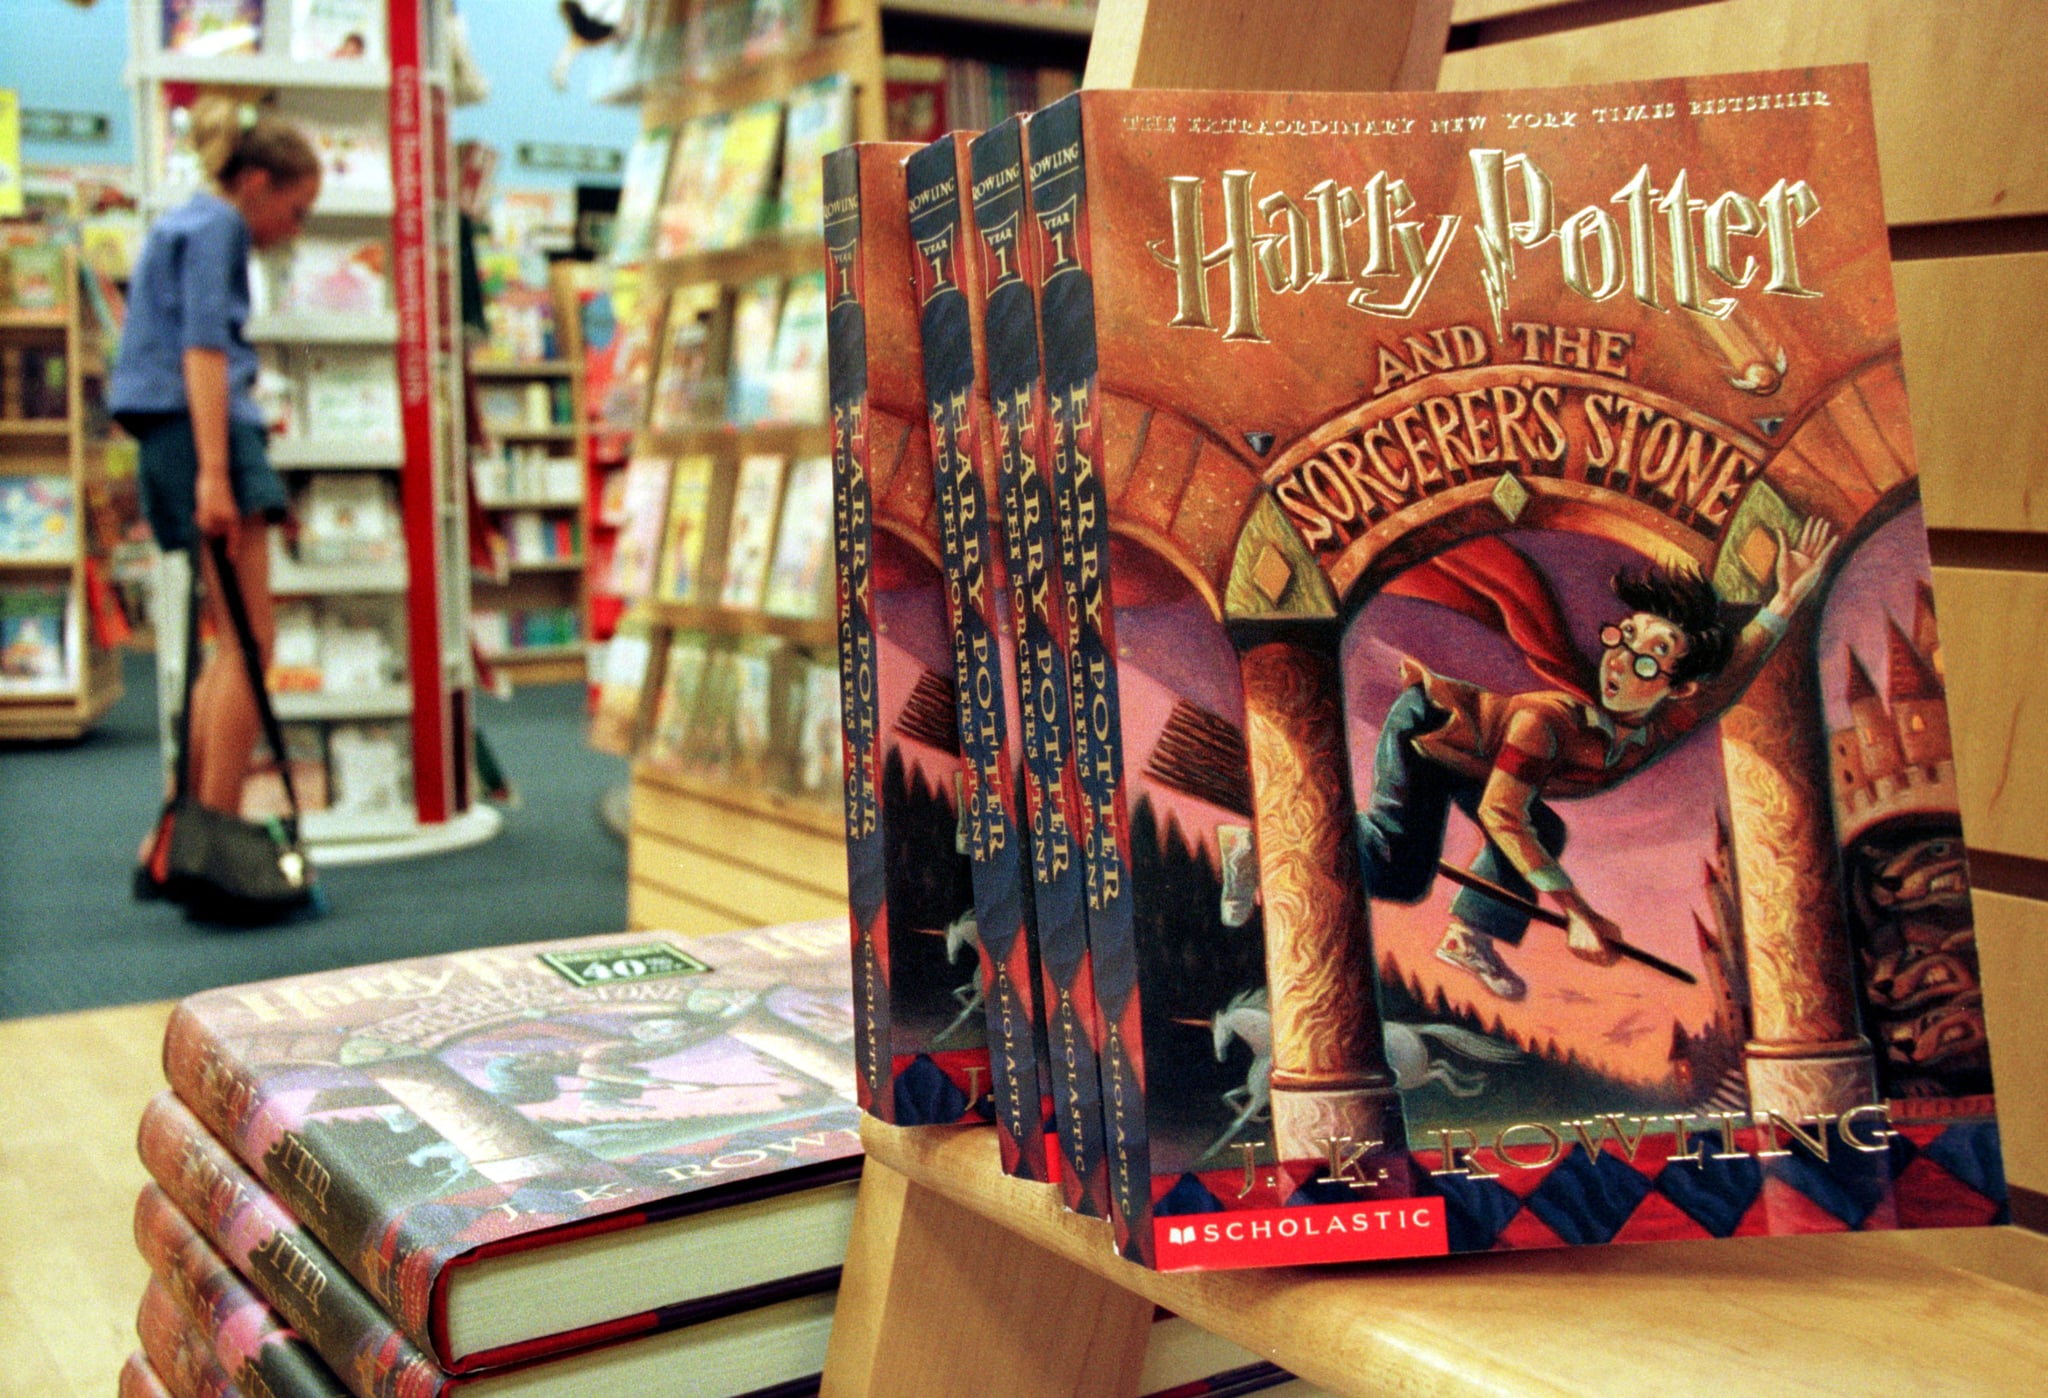 372284 01: Copies of author J. K. Rowling's Harry Potter series story books sit in a bookstore July 6, 2000 in Arlington, Va. Rowling's fourth book,